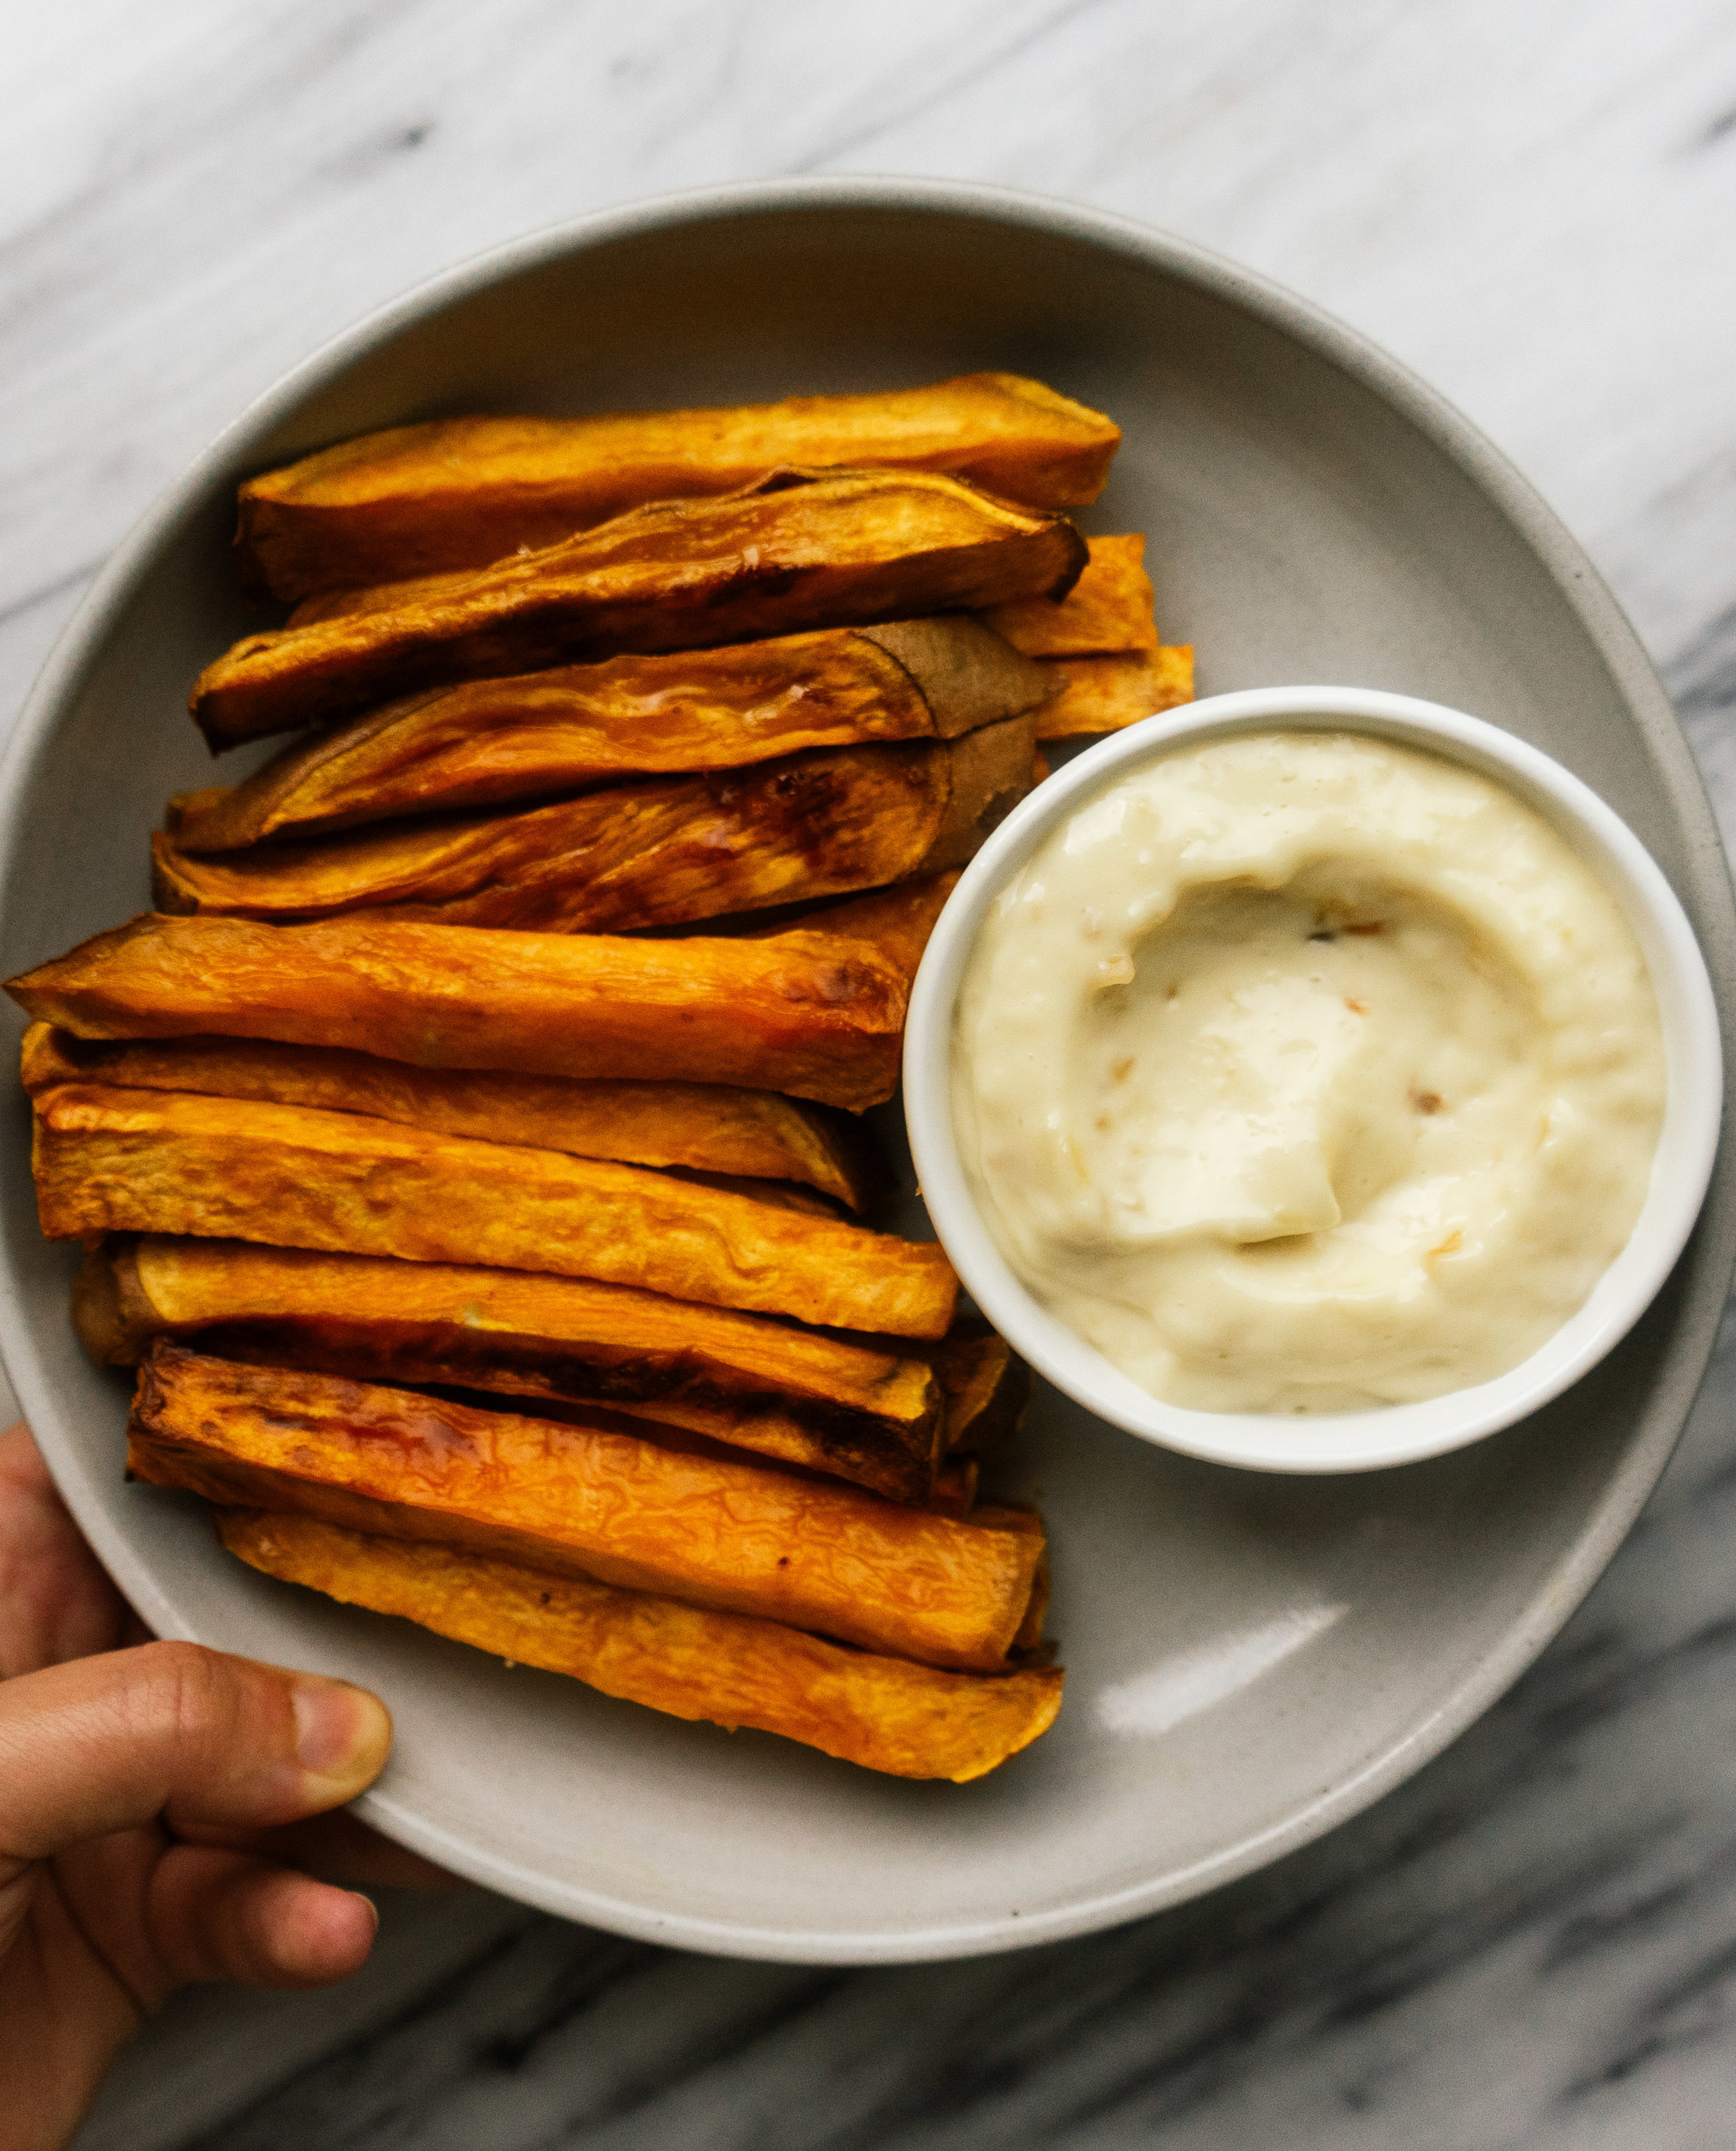 This Whole30 French Onion Dip is a healthy copy cat version of the Lay's french onion dip. This creamy dip is packed with flavor and made with healthy paleo and whole30 approved ingredients. Make this whole30 dip with sweet potato fries for a perfect healthy comfort food.